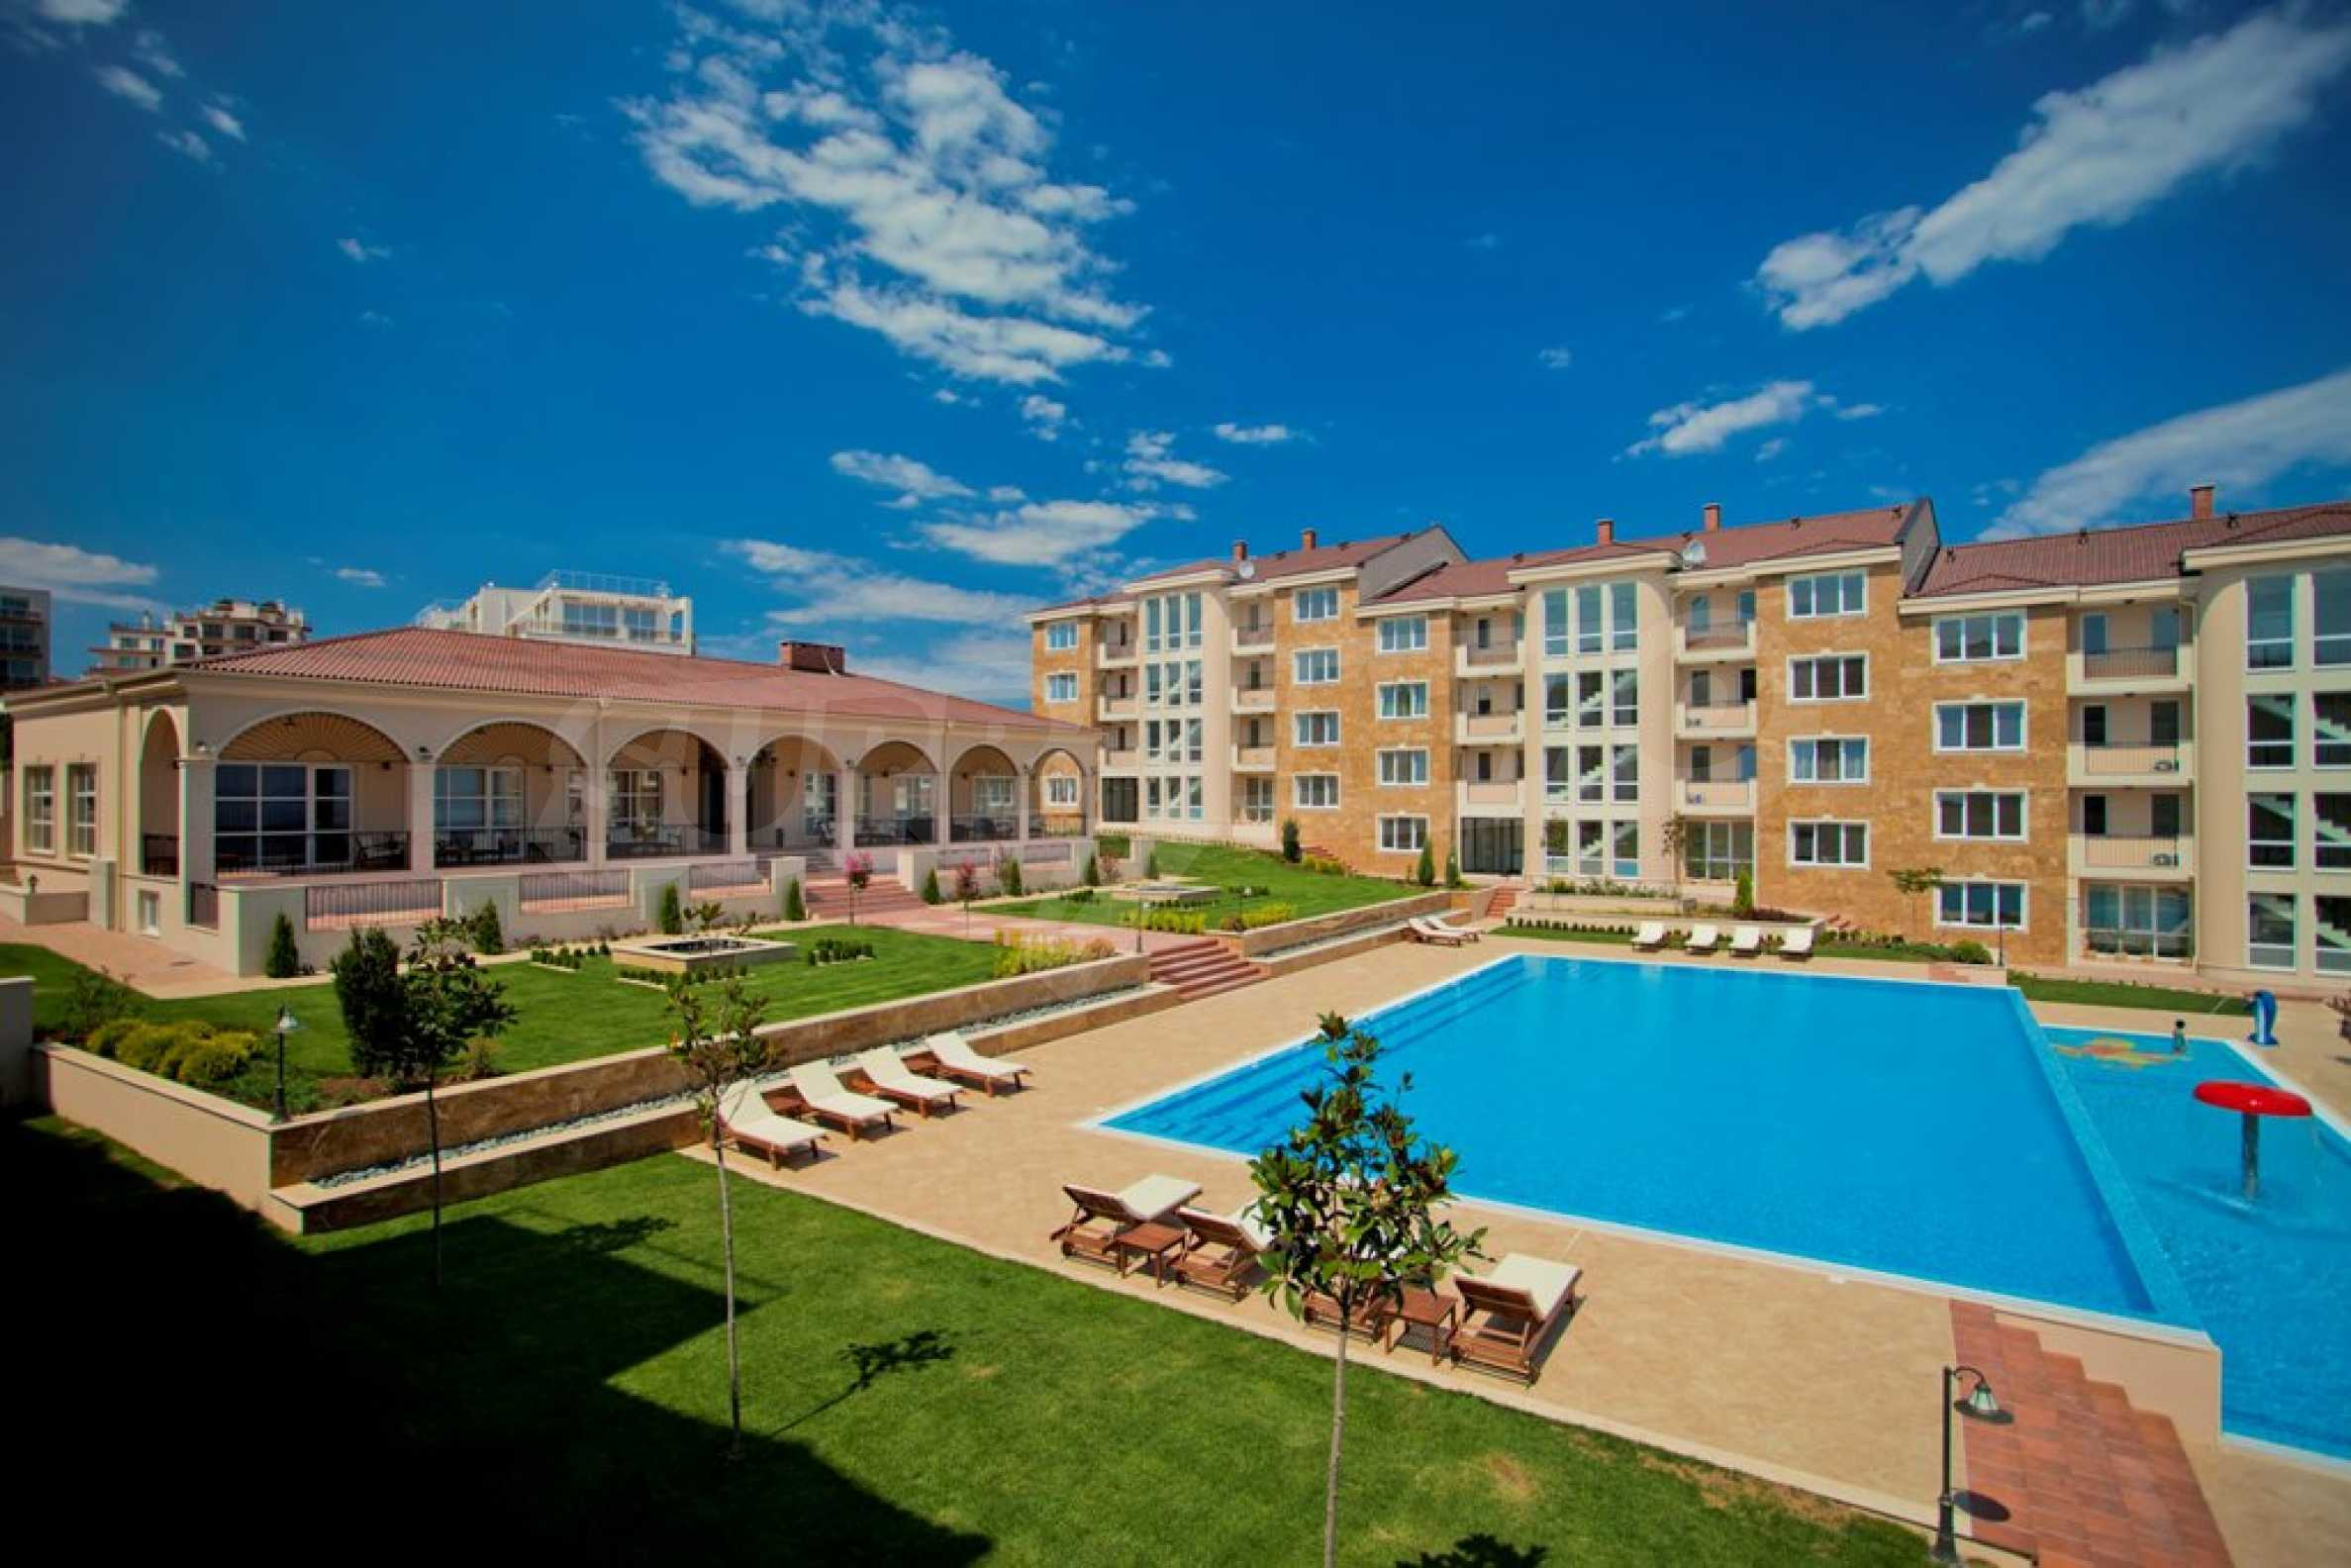 New apartment complex Atia resort in Chernomorets 9